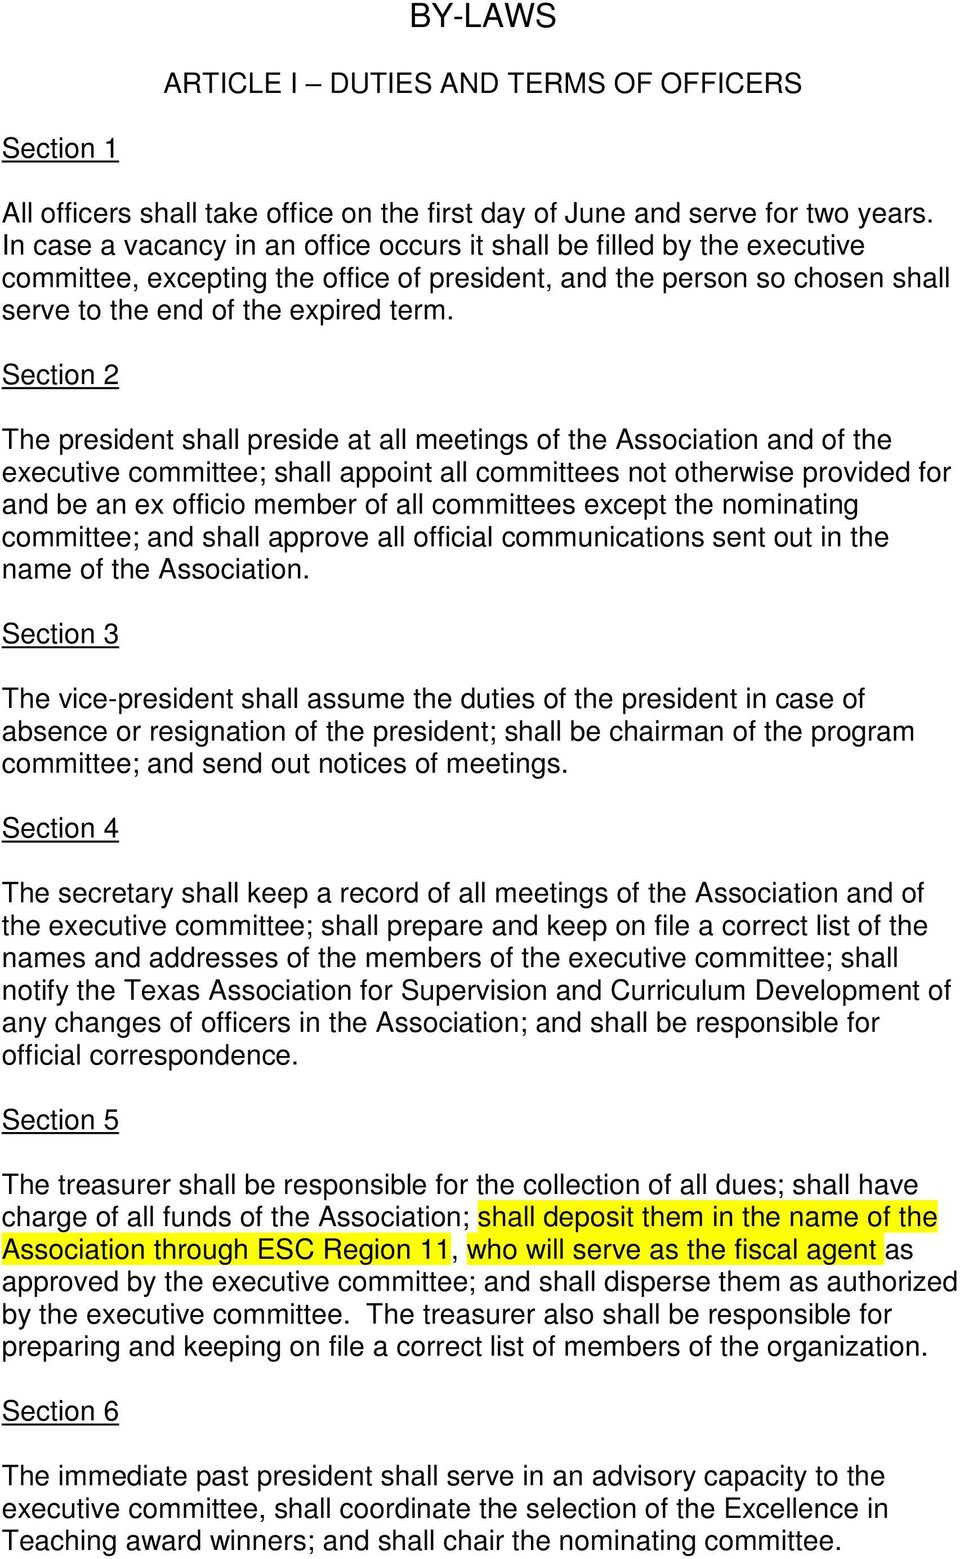 The president shall preside at all meetings of the Association and of the executive committee; shall appoint all committees not otherwise provided for and be an ex officio member of all committees